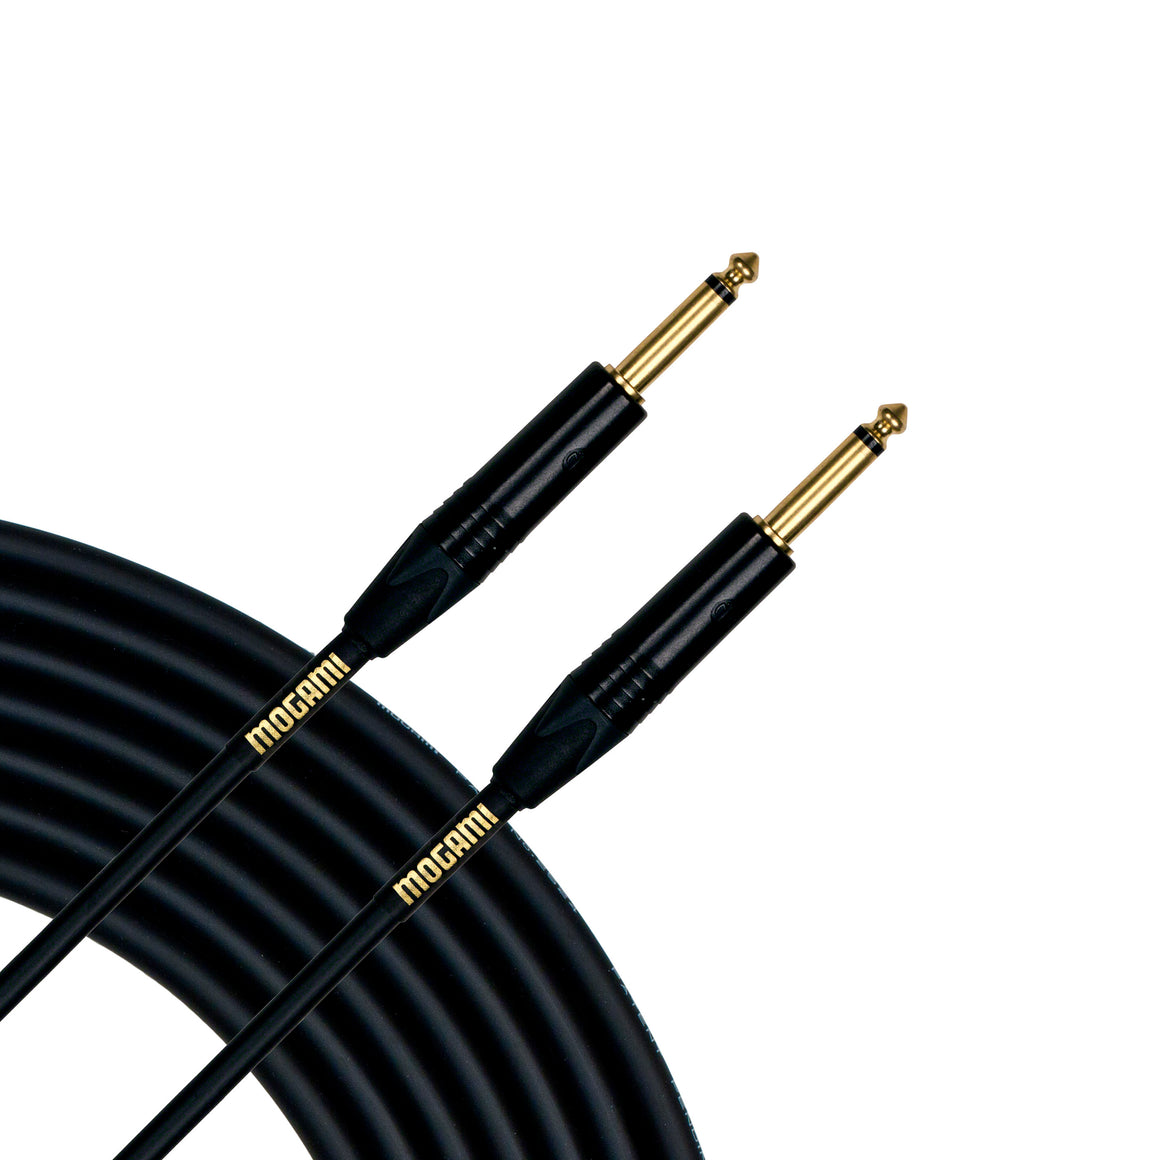 "Mogami Gold Instrument Cable 10, 1/4"" TS, 10' length Straight - Straight"